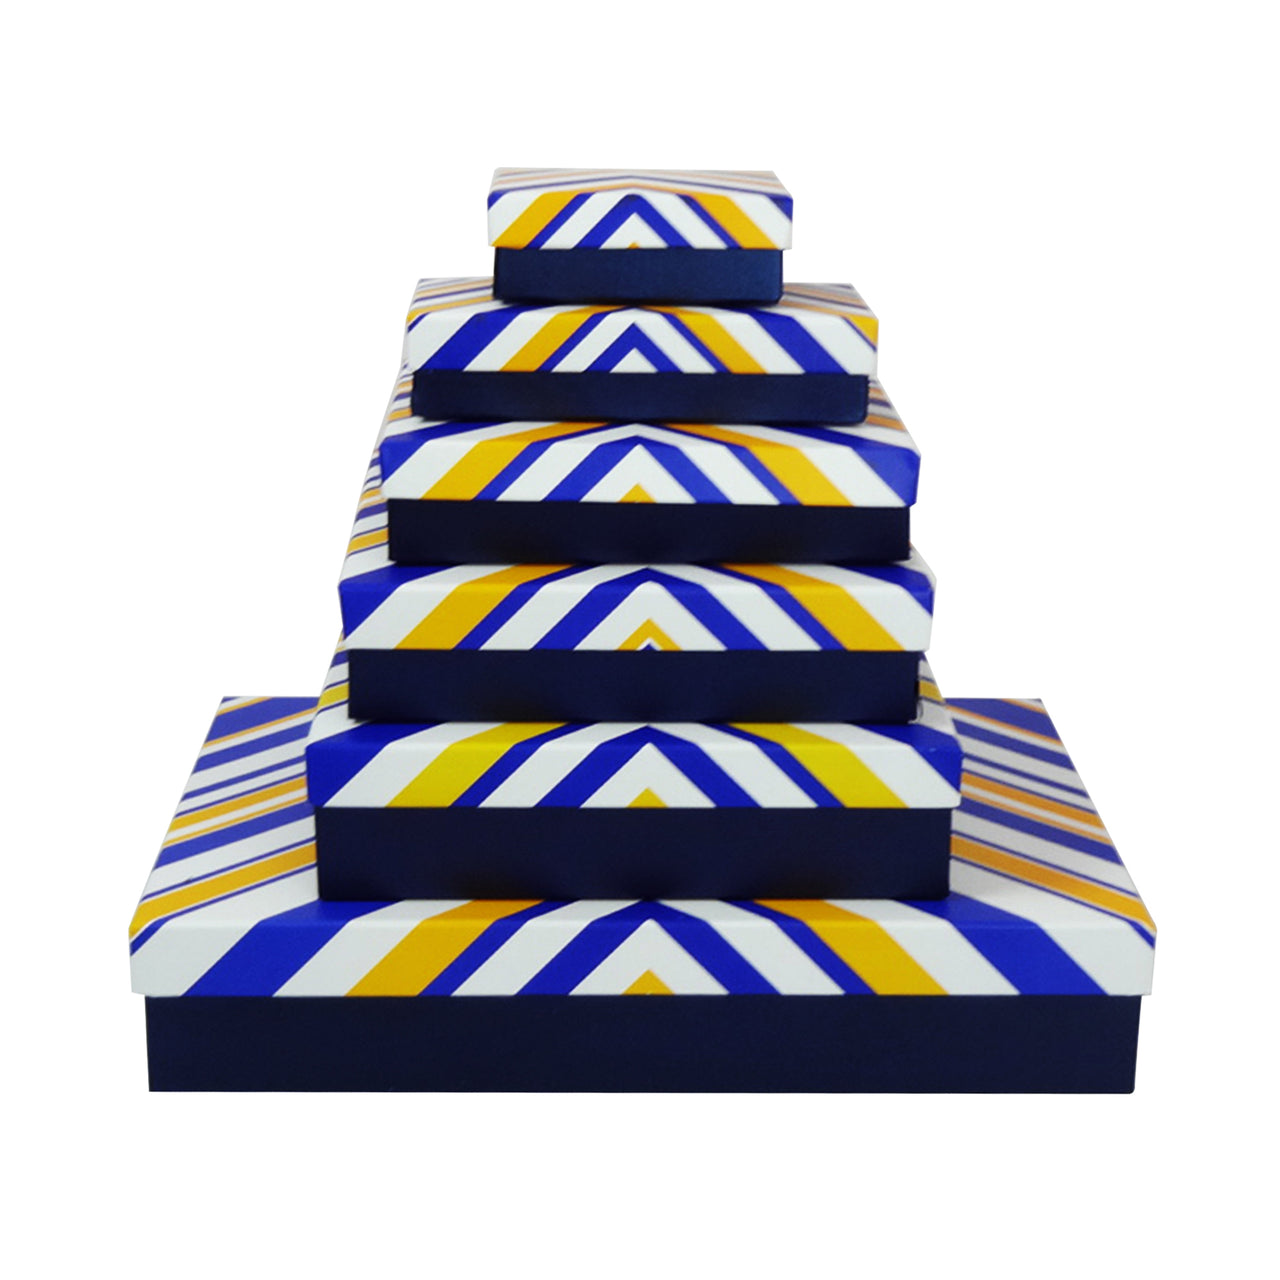 Blue Triangular Stripes Gift Box - Set Of 6